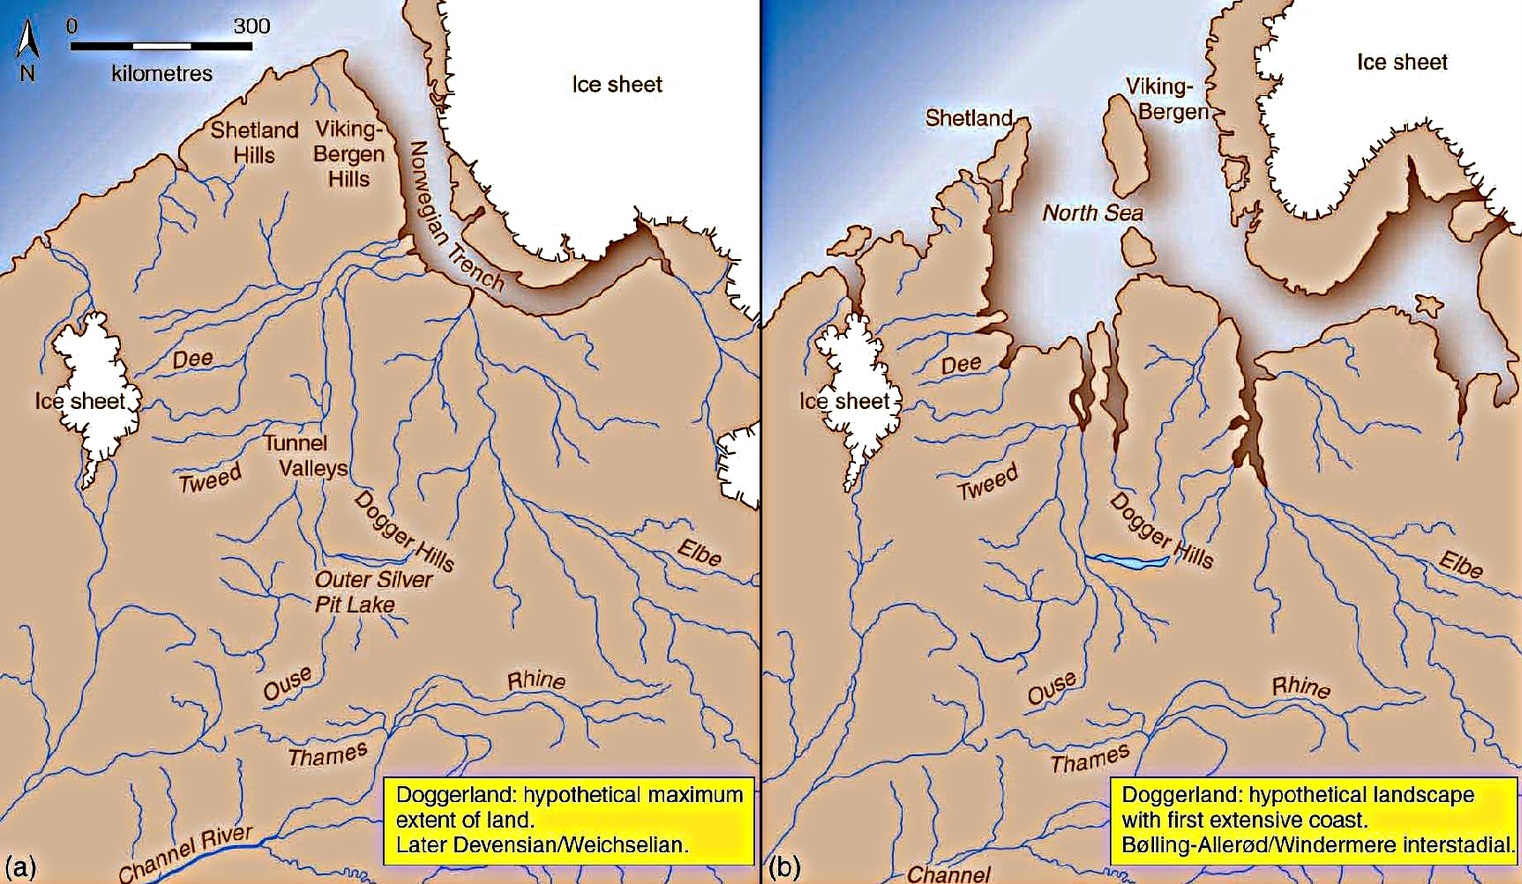 Doggerland at (A) its hypothetical maximum, with glaciers remaining in Scottish highlands to the left, and (B) as the coastline recedes. Vincent Gaffney